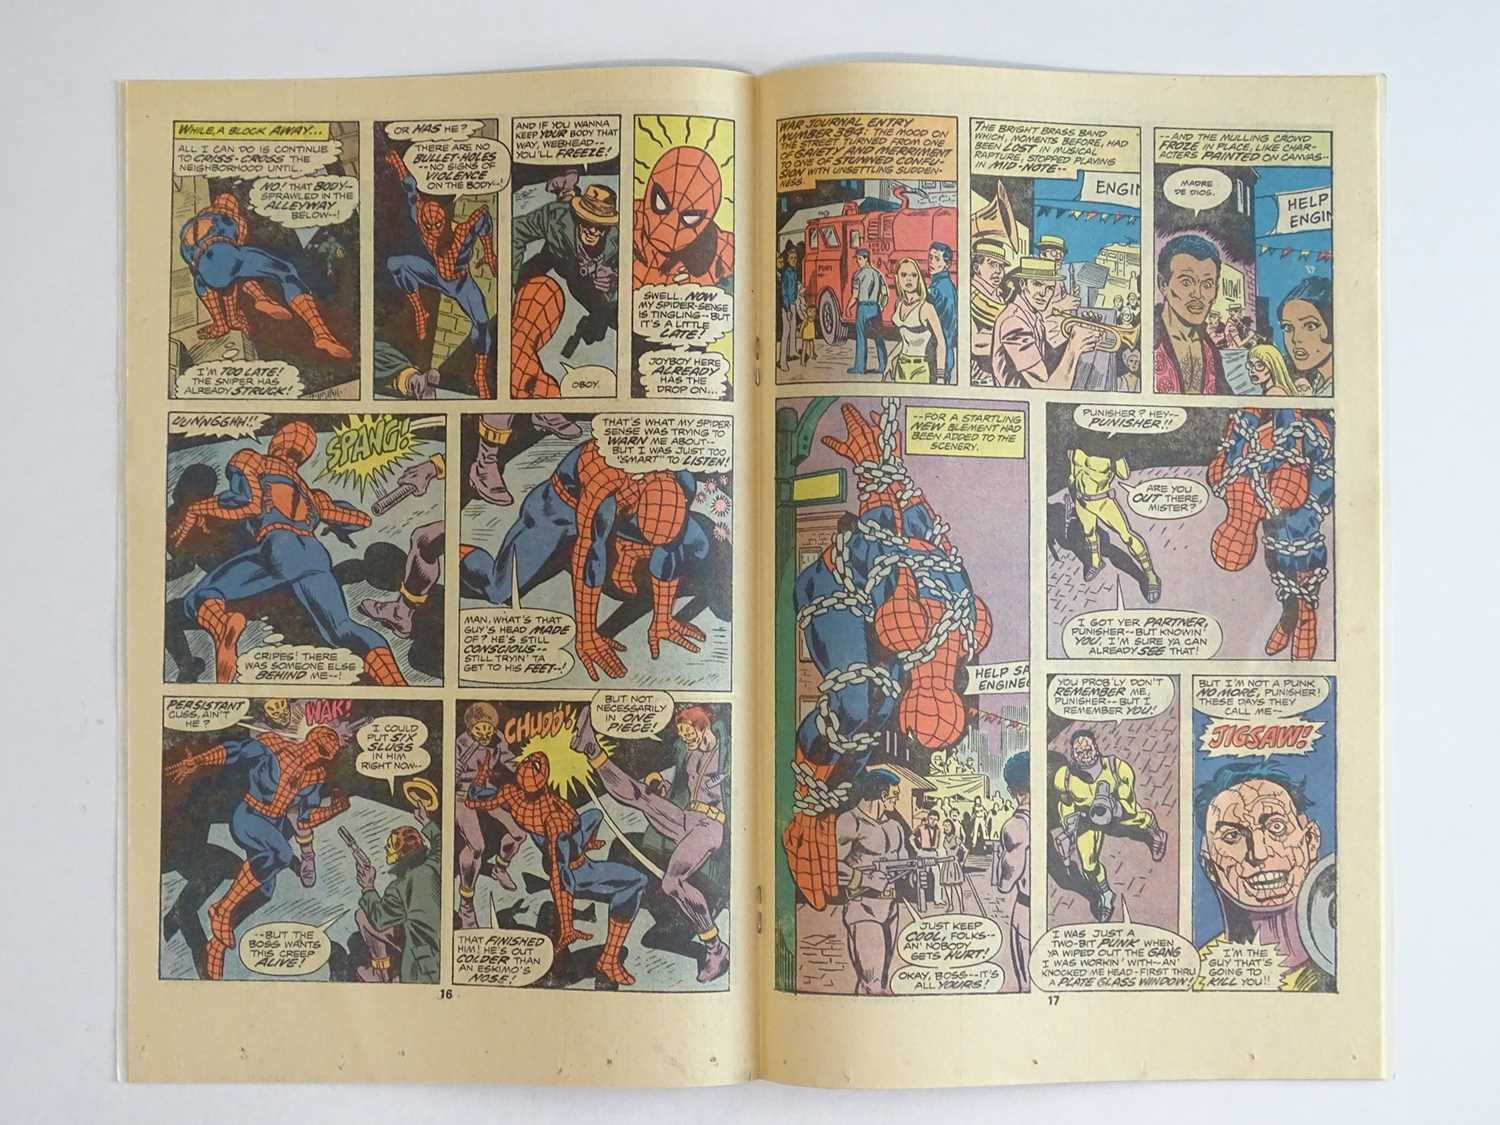 AMAZING SPIDER-MAN #162 - (1976 - MARVEL) - First full appearance of Jigsaw and Dr. Maria - Image 5 of 9